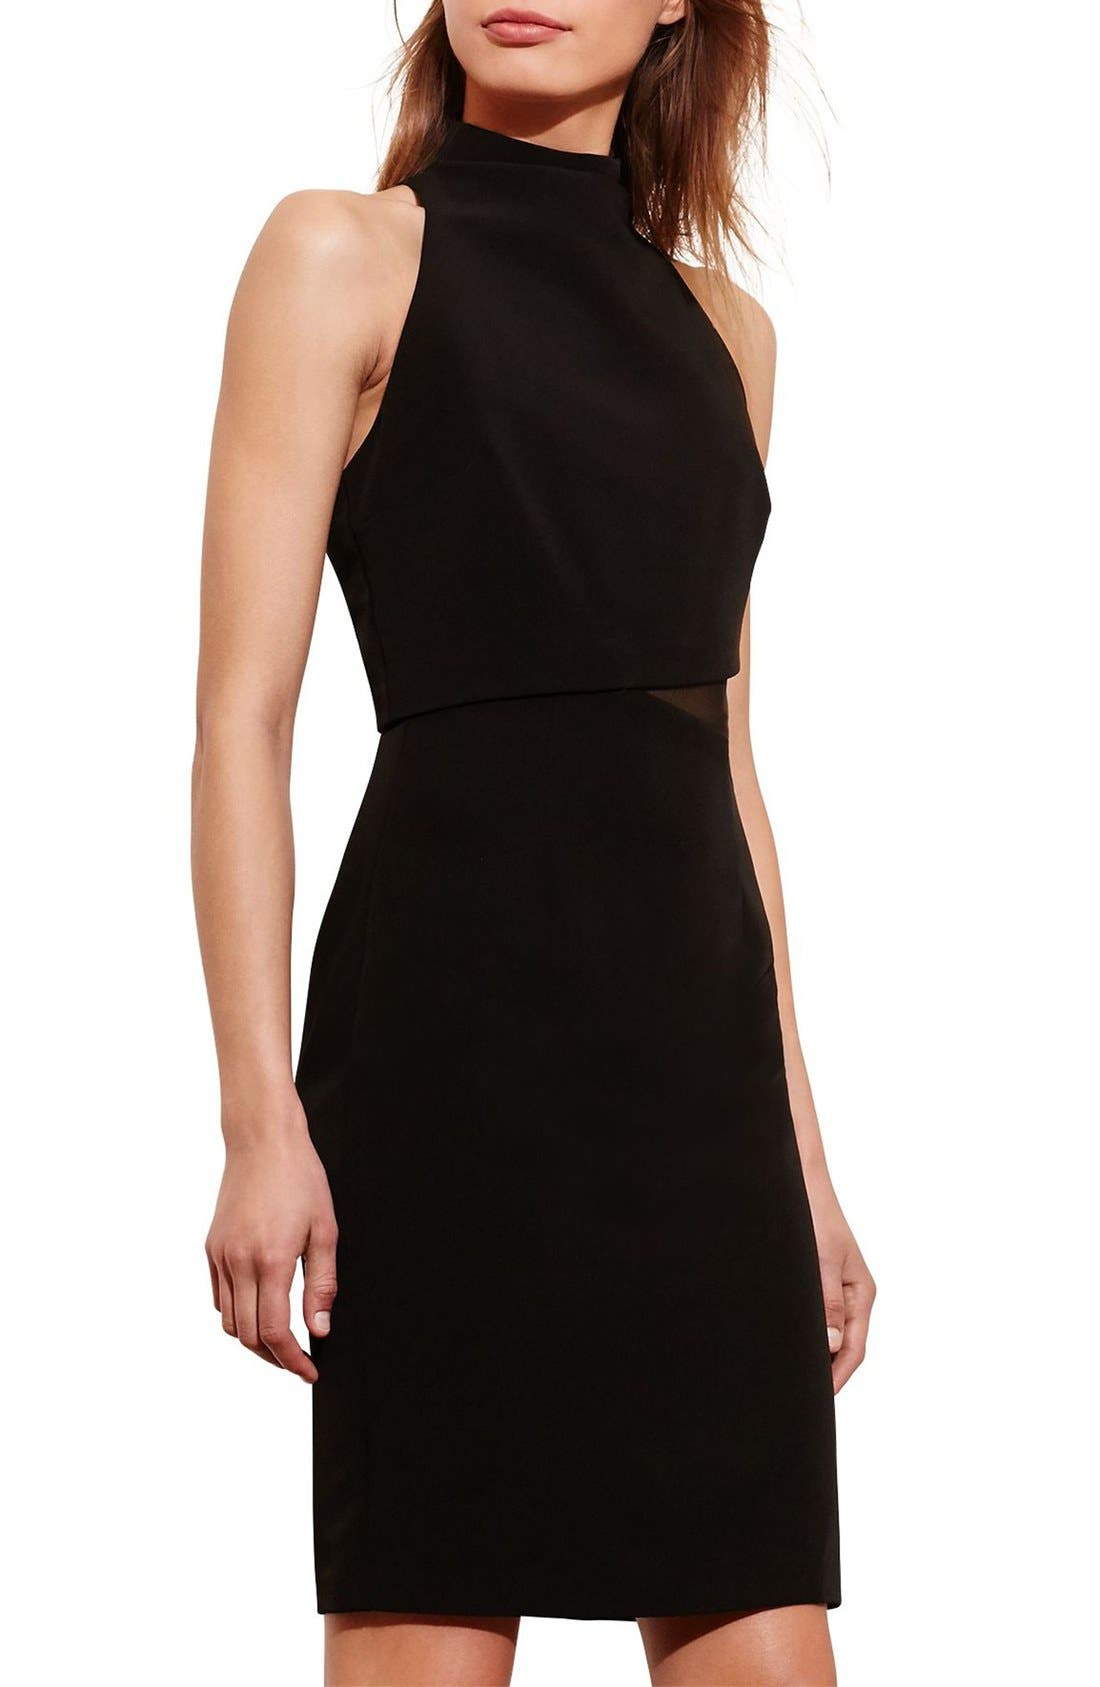 Alternate Image 1 Selected - Lauren Ralph Lauren Asymmetrical Stretch Sheath Dress